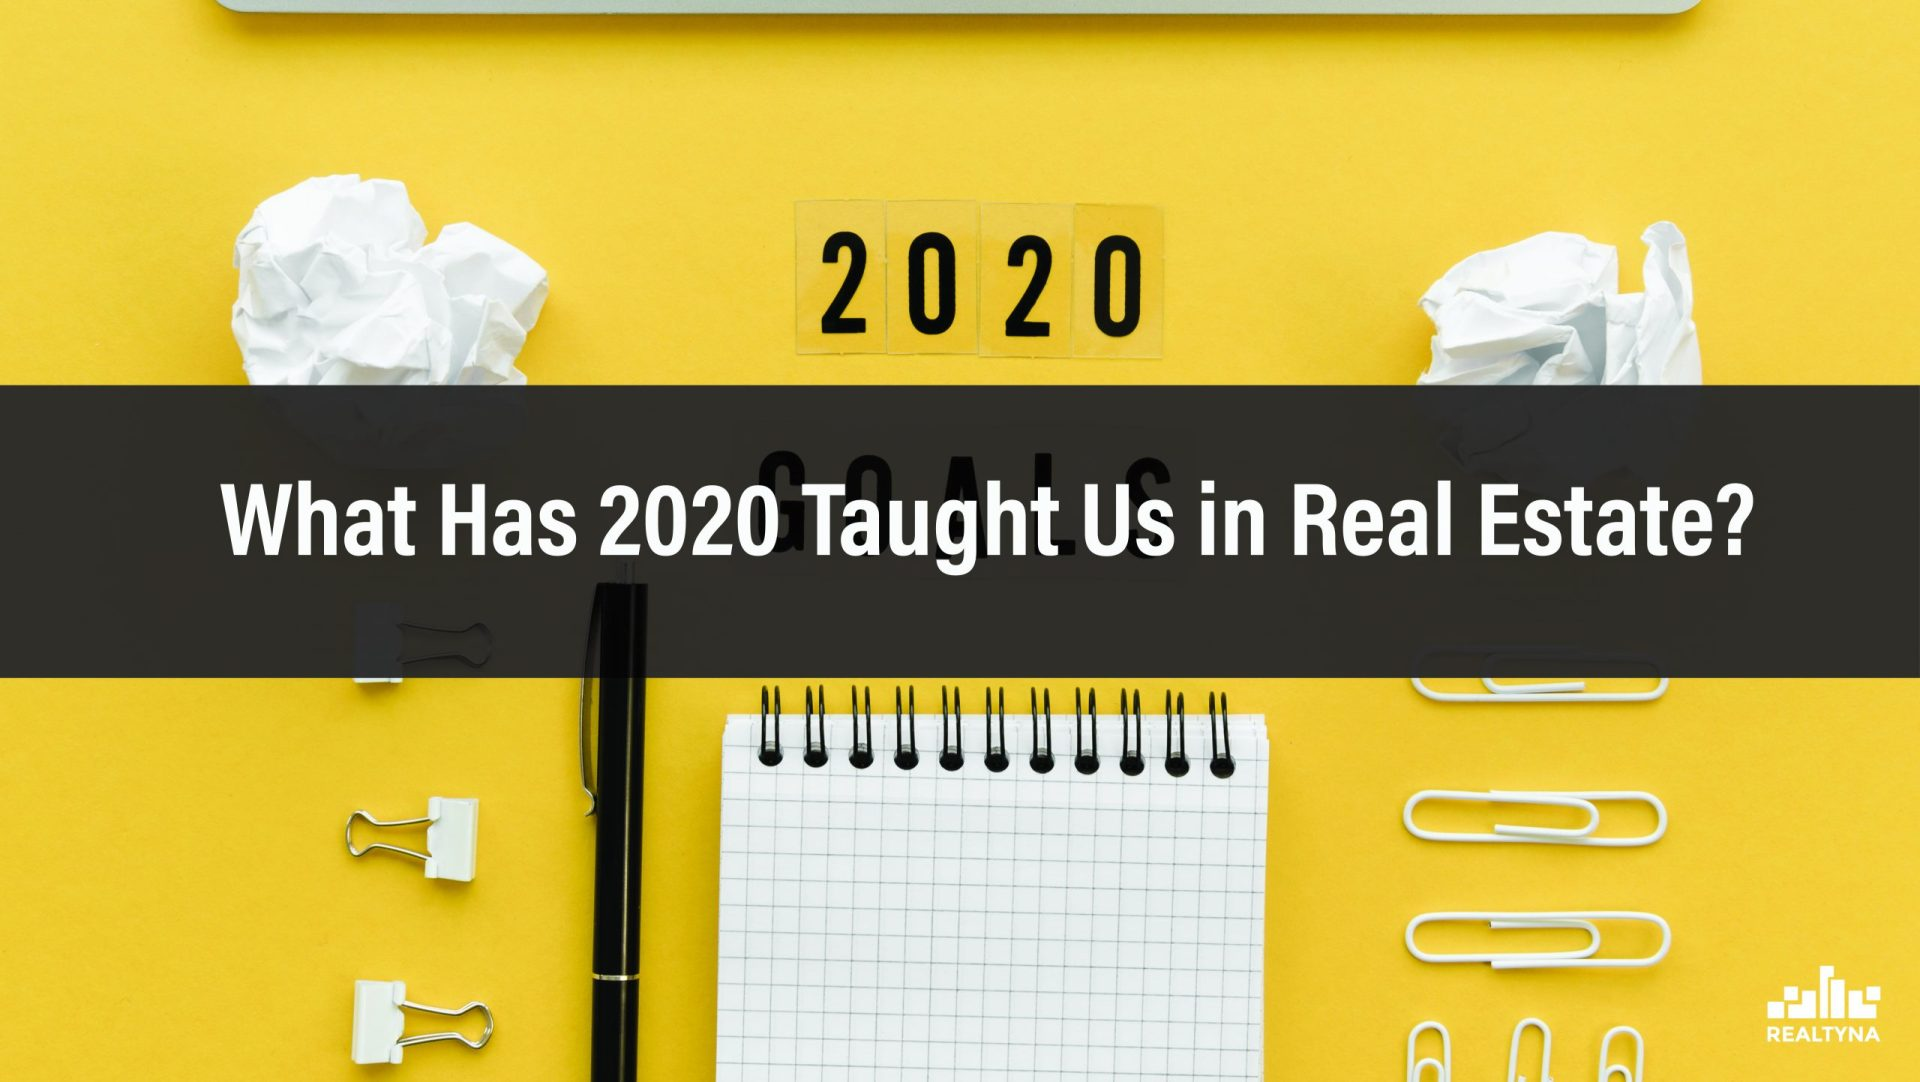 What Has 2020 Taught Us in Real Estate?